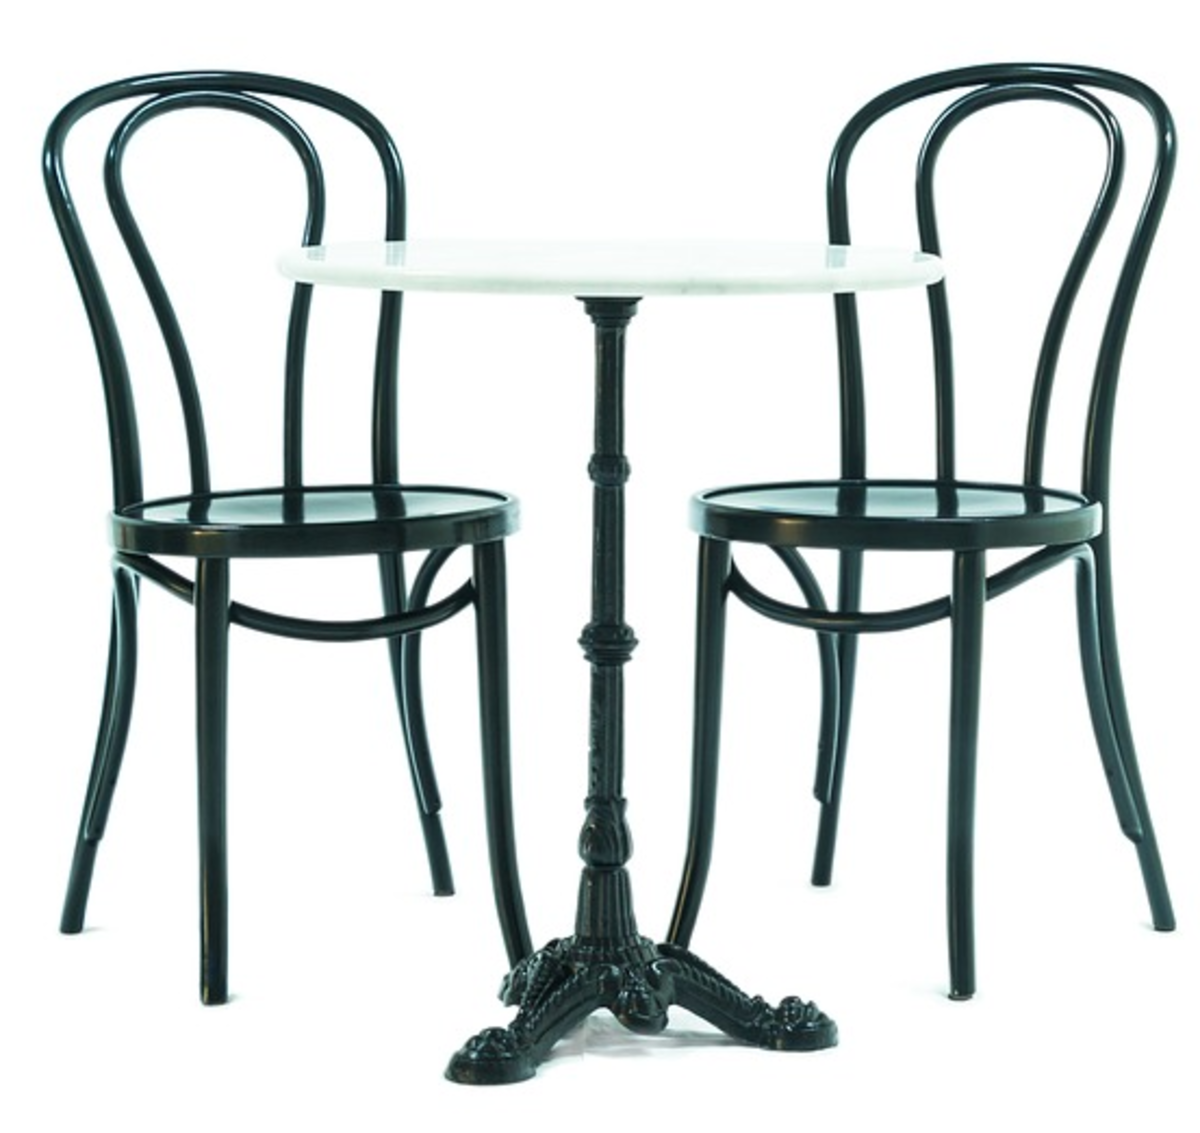 Michael Thonet's bentwood furniture design - Features wood bent into stylish shapes using boiling liquids or steam.